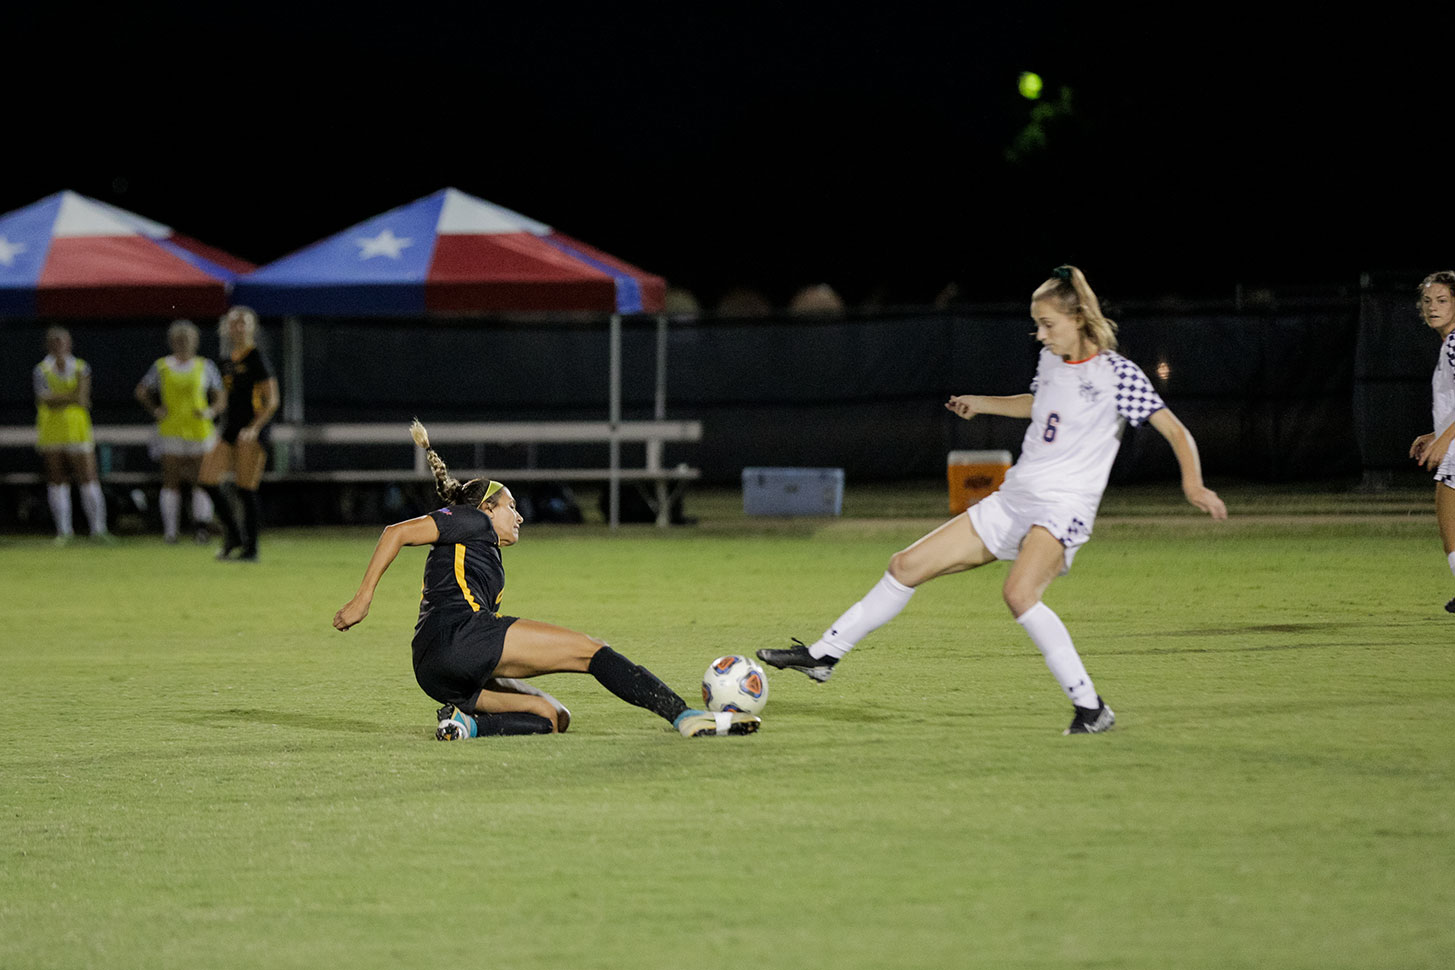 Sport and leisure studies senior and defender Hayden Zuniga slides to kick the ball out from under the foot of a Mines player